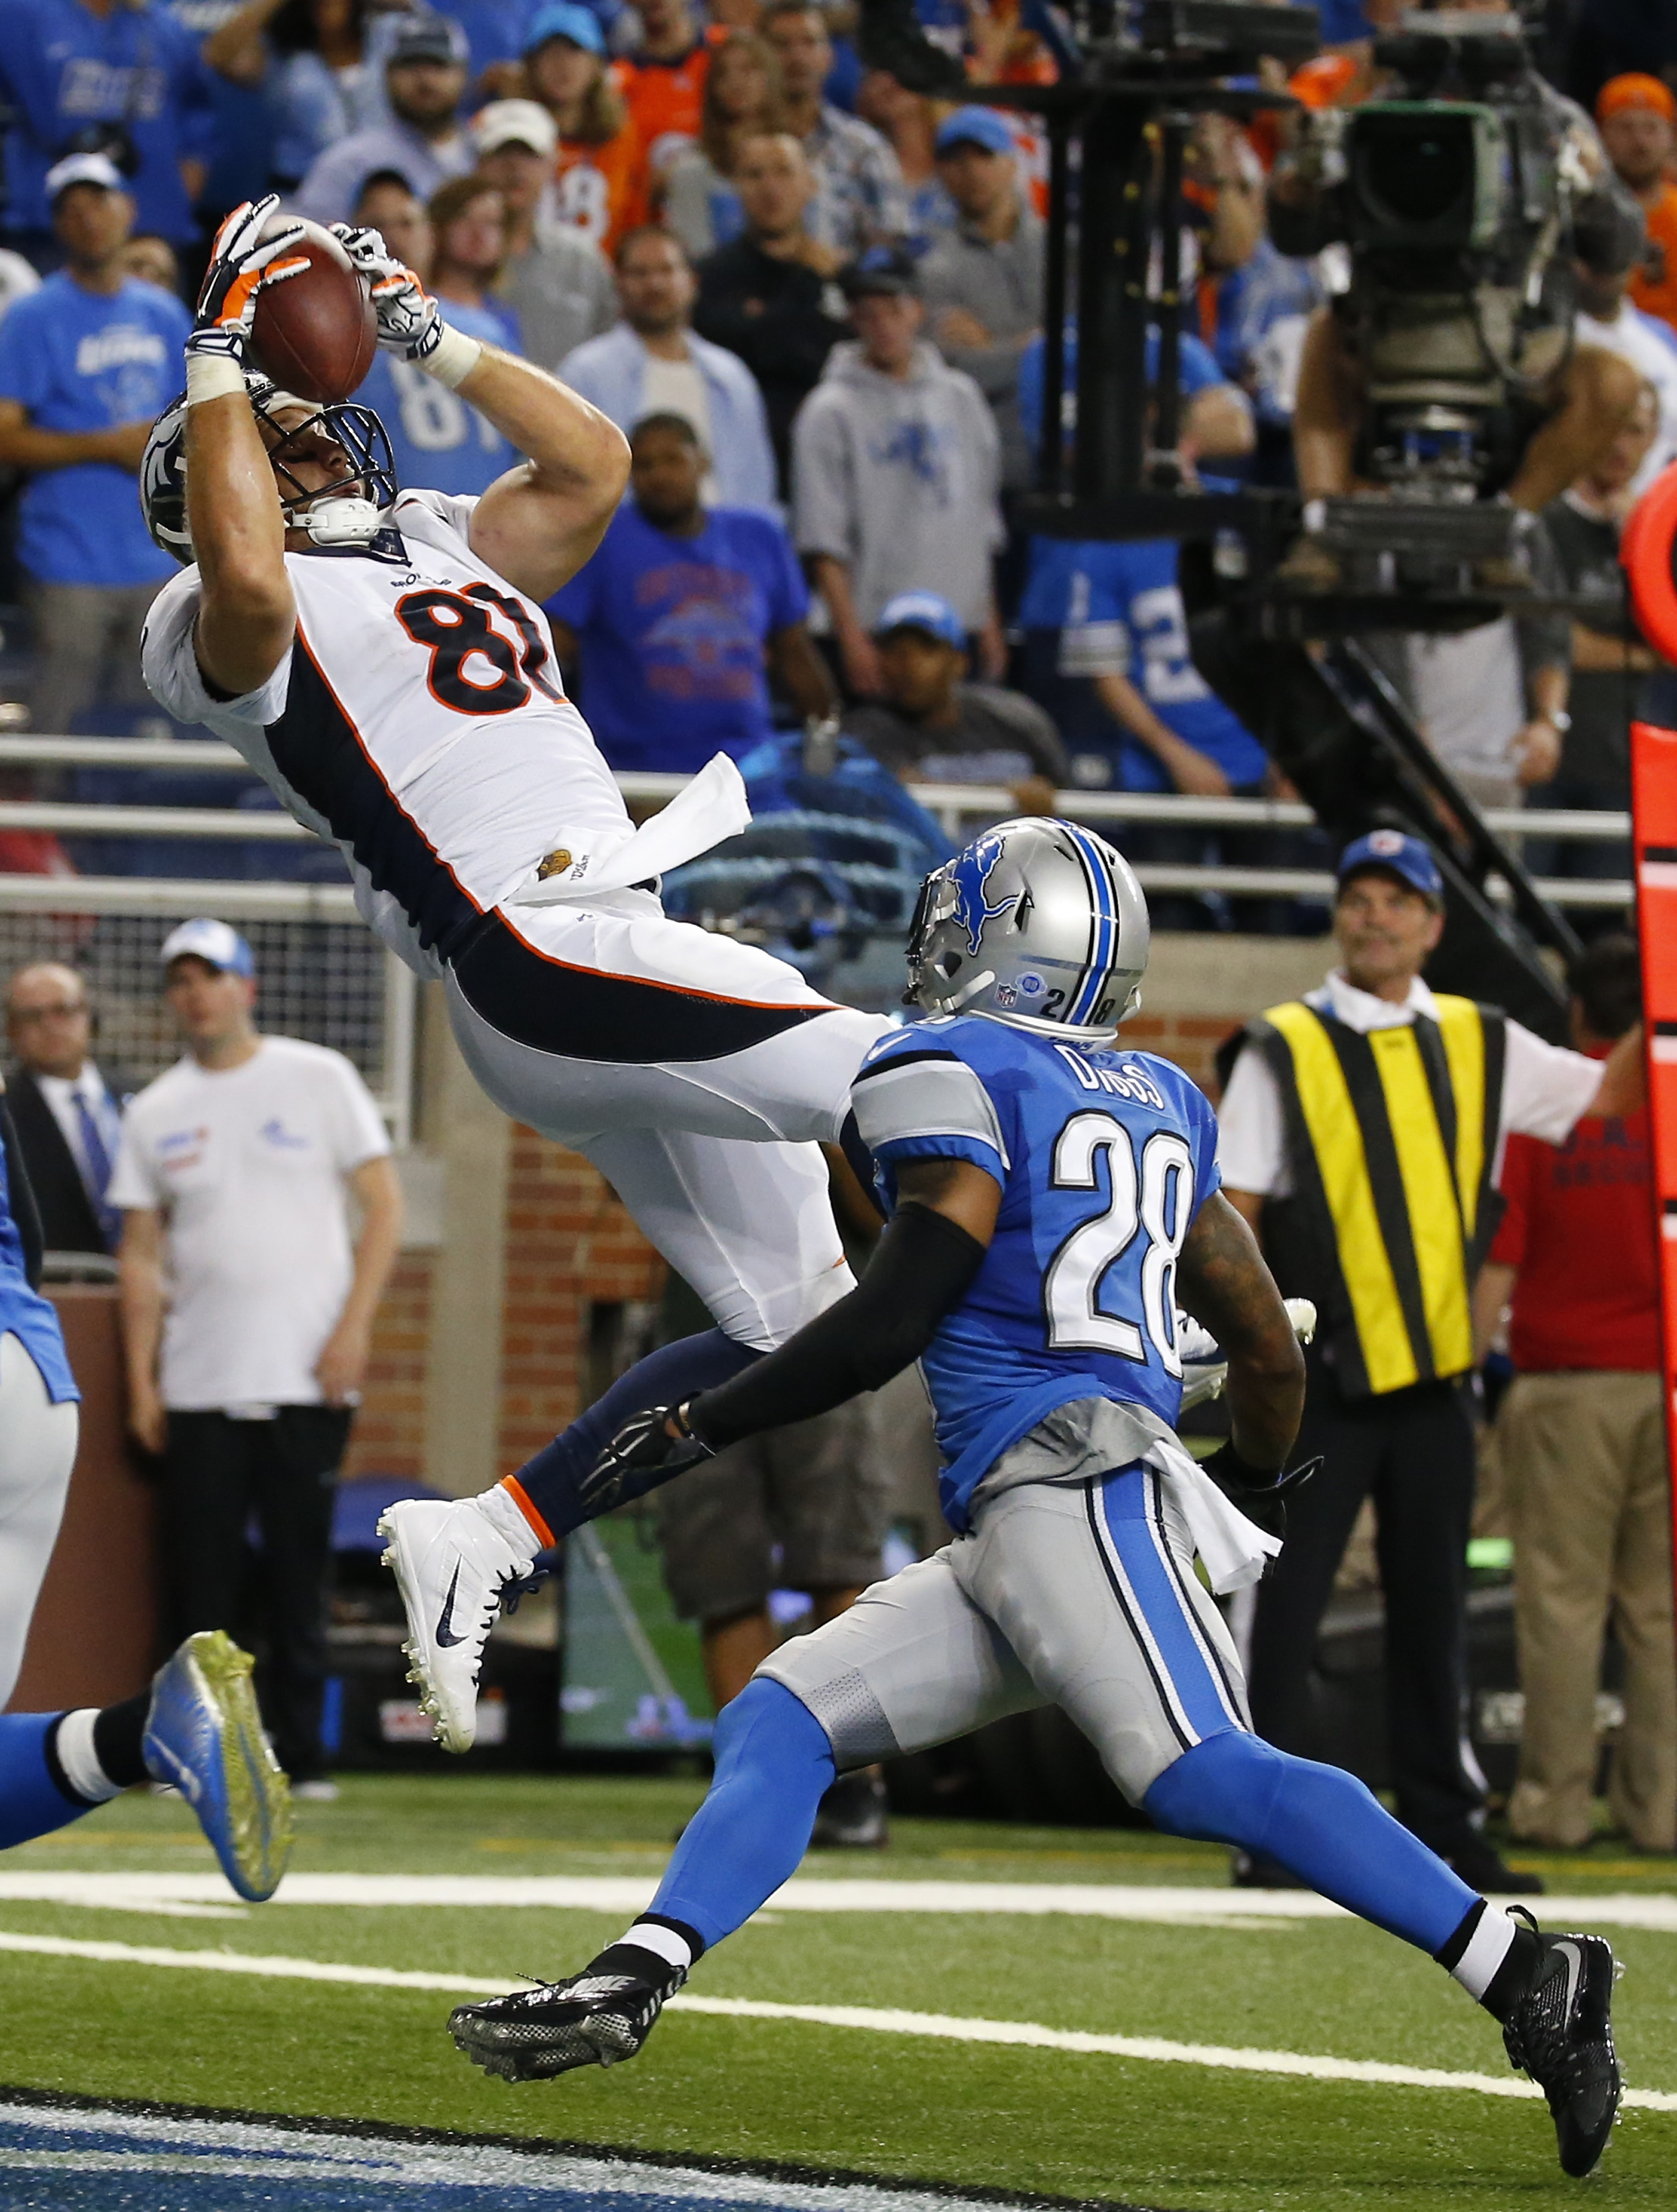 Denver Broncos tight end Owen Daniels (81), defended by Detroit Lions cornerback Quandre Diggs (28), catches a pass fora touchdown during the second half of an NFL football game, Sunday, Sept. 27, 2015, in Detroit. (AP Photo/Paul Sancya)